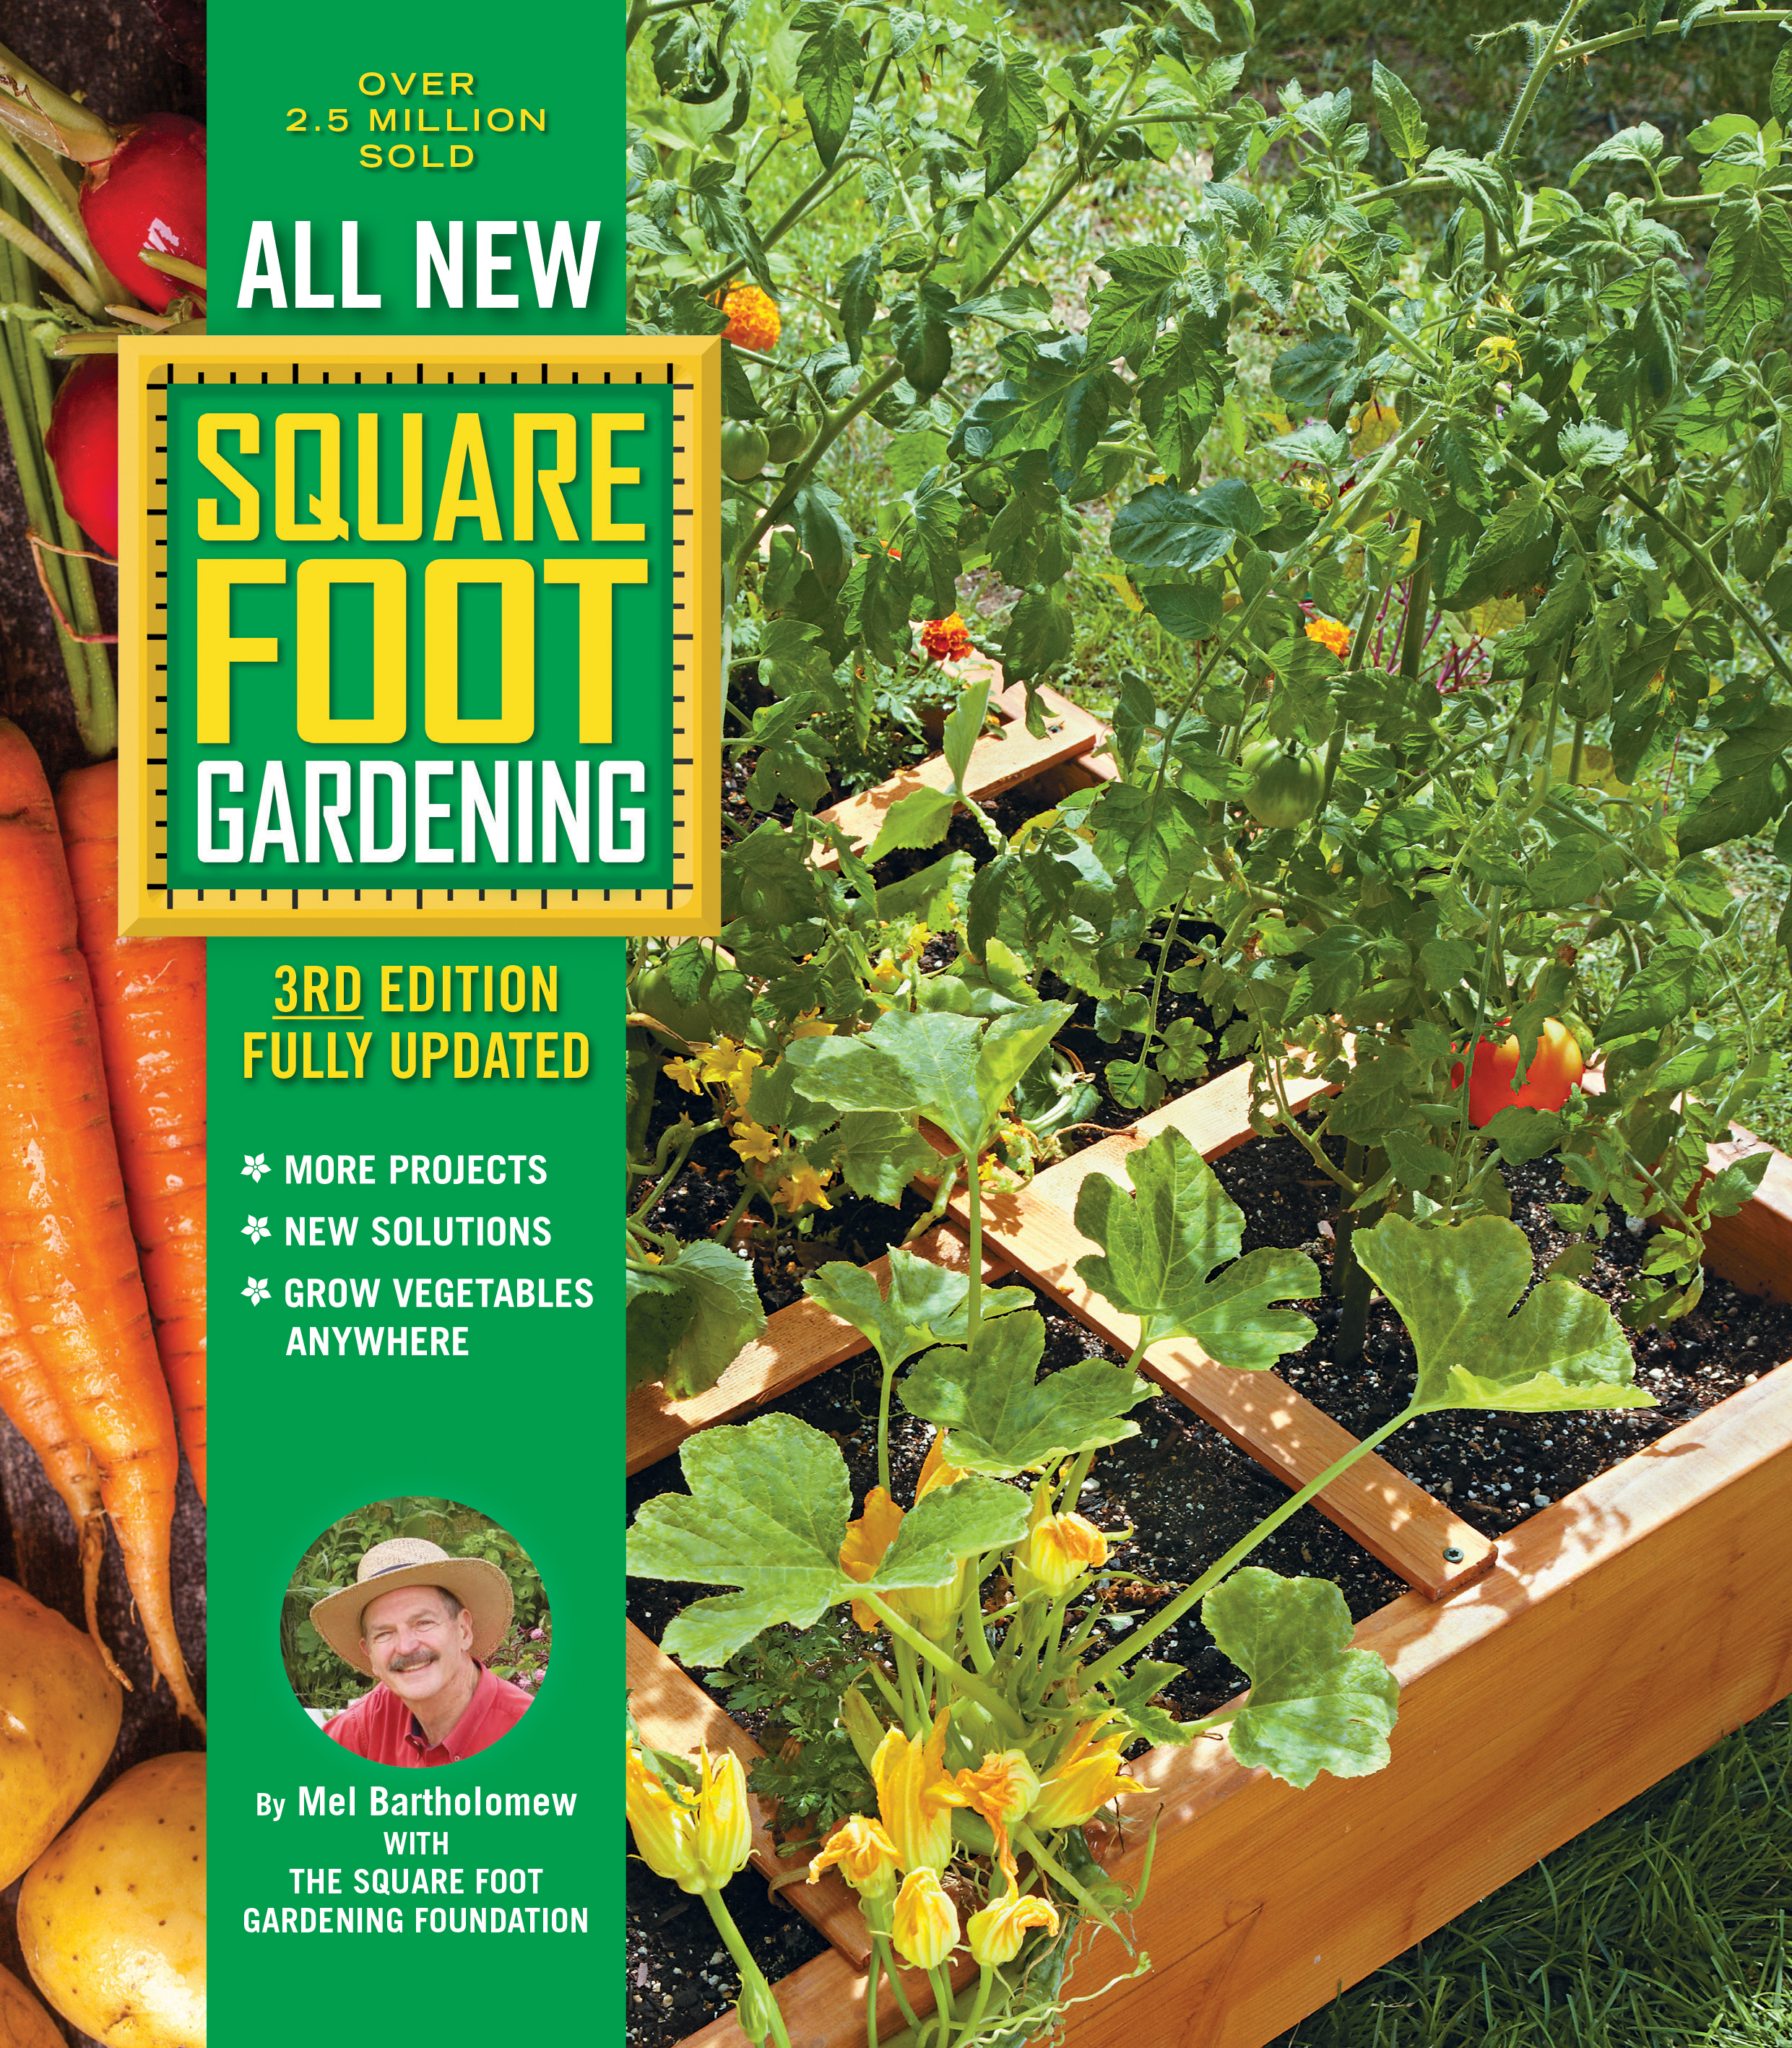 Cover Image of All New Square Foot Gardening, 3rd Edition, Fully Updated